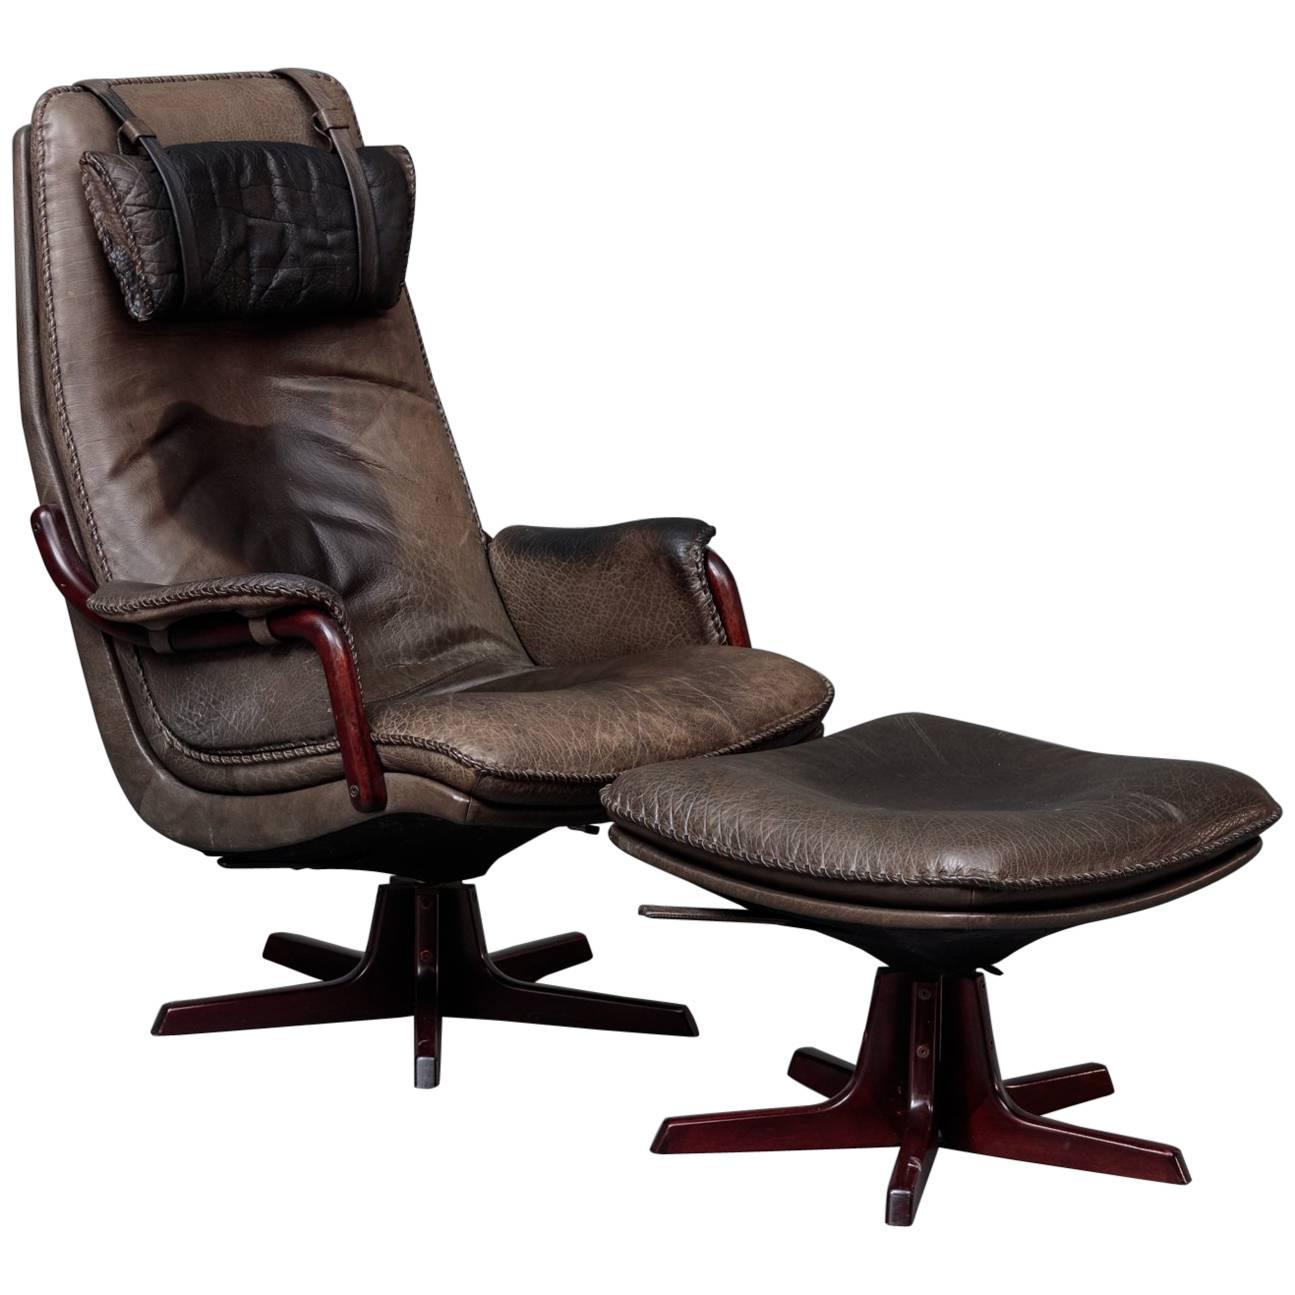 Leather and Rosewood Recliner and Ottoman